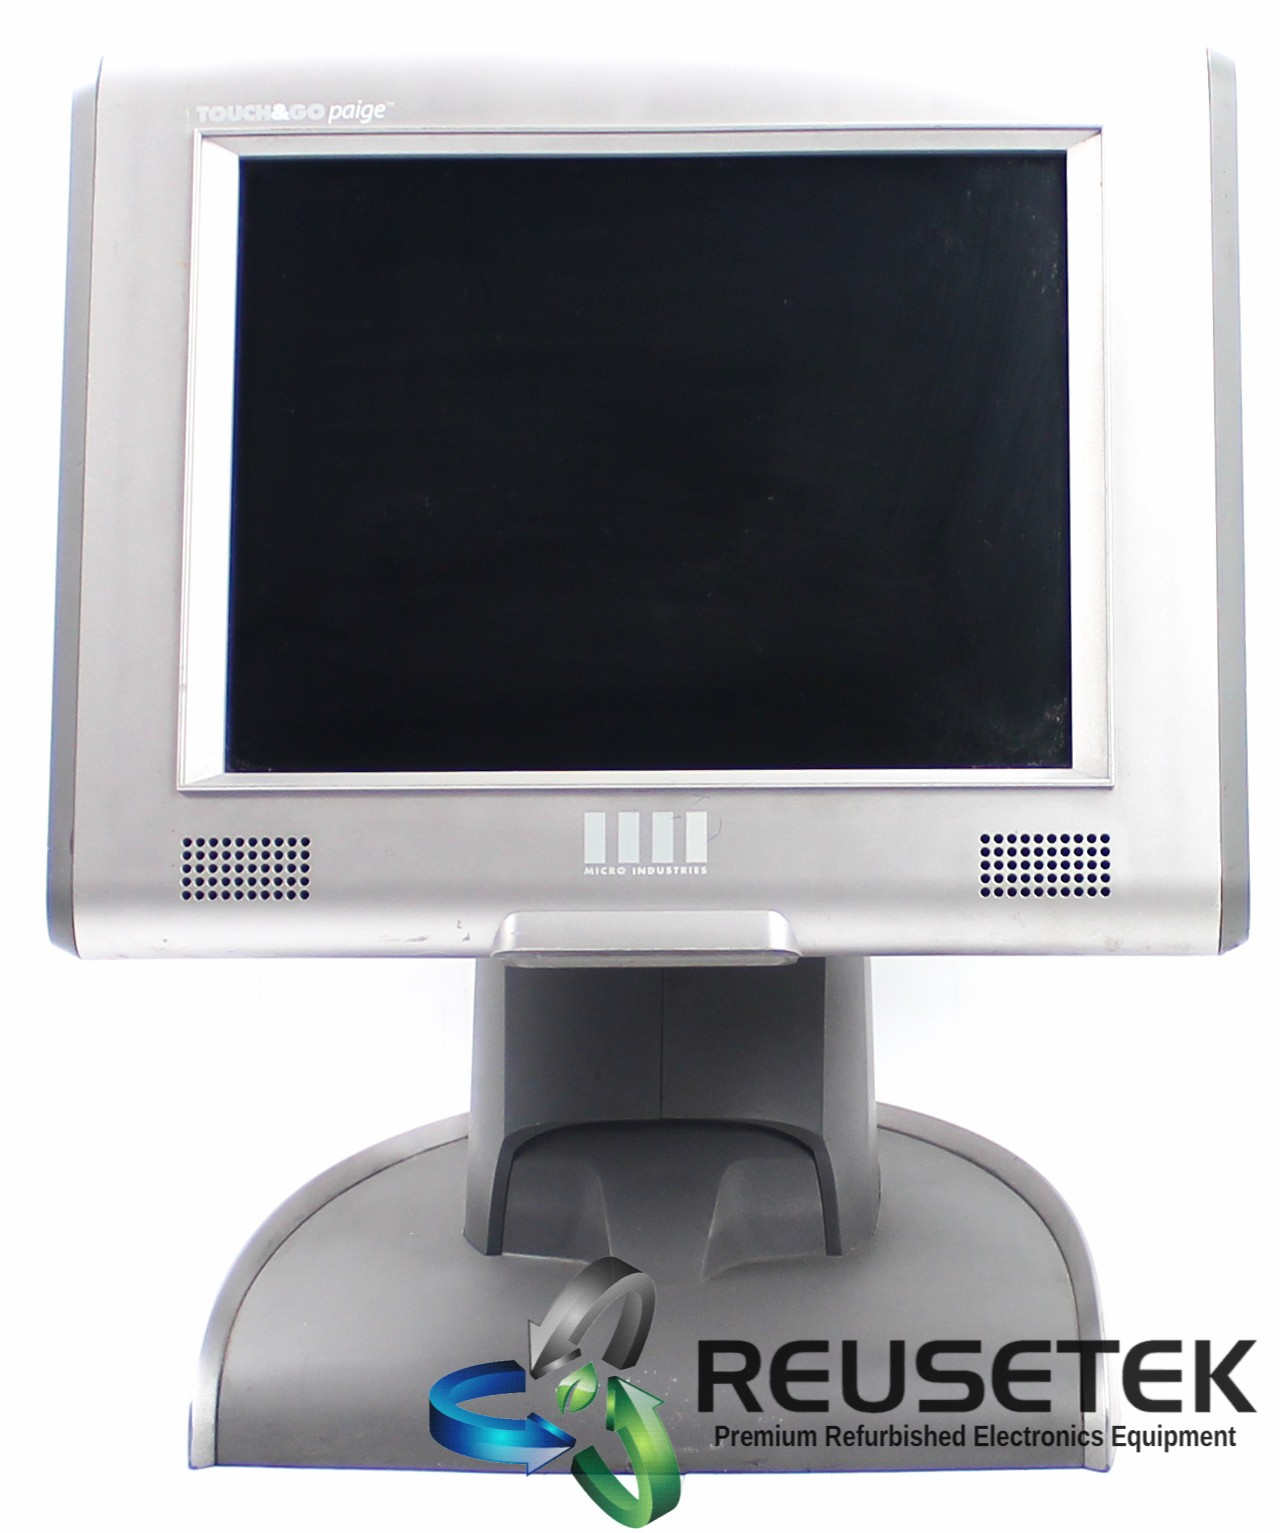 CDH5099-Micro Industries Touch&Go Paige Model 9500143 Self Service Retail Kiosk-image